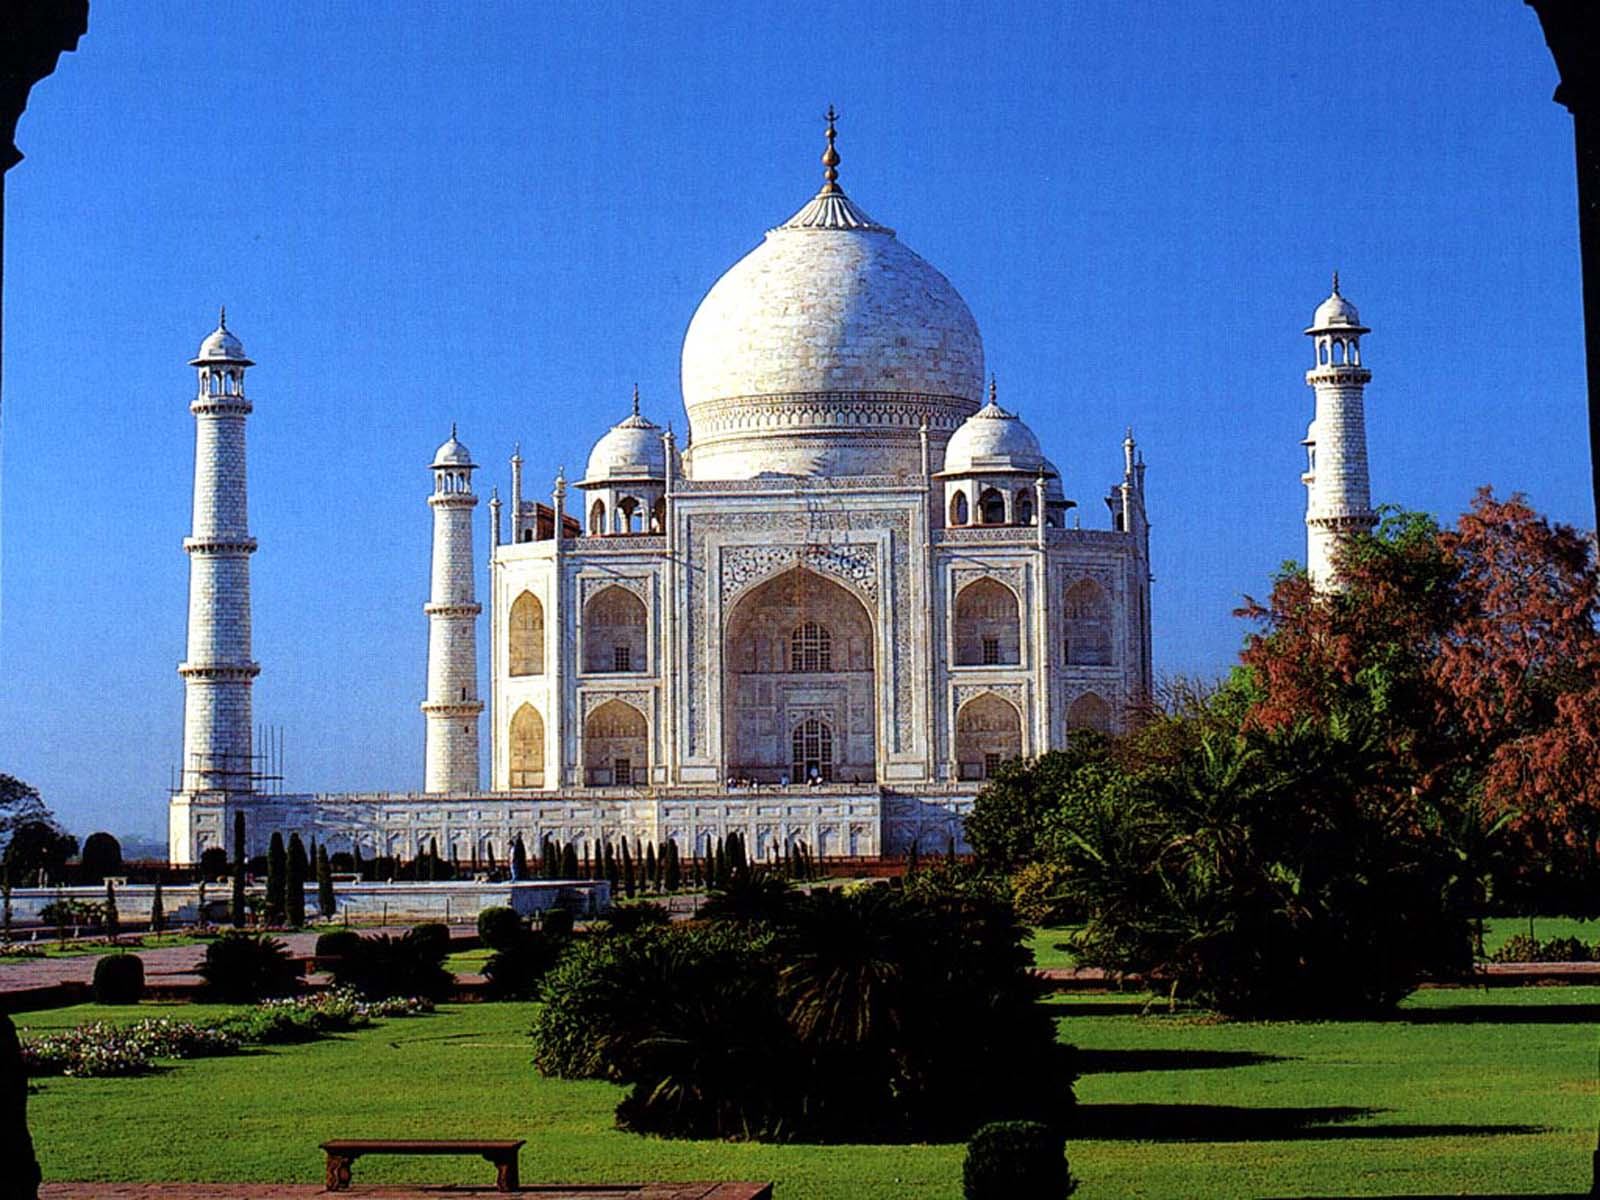 48 taj mahal wallpapers for desktop on wallpapersafari - Taj mahal screensaver free download ...